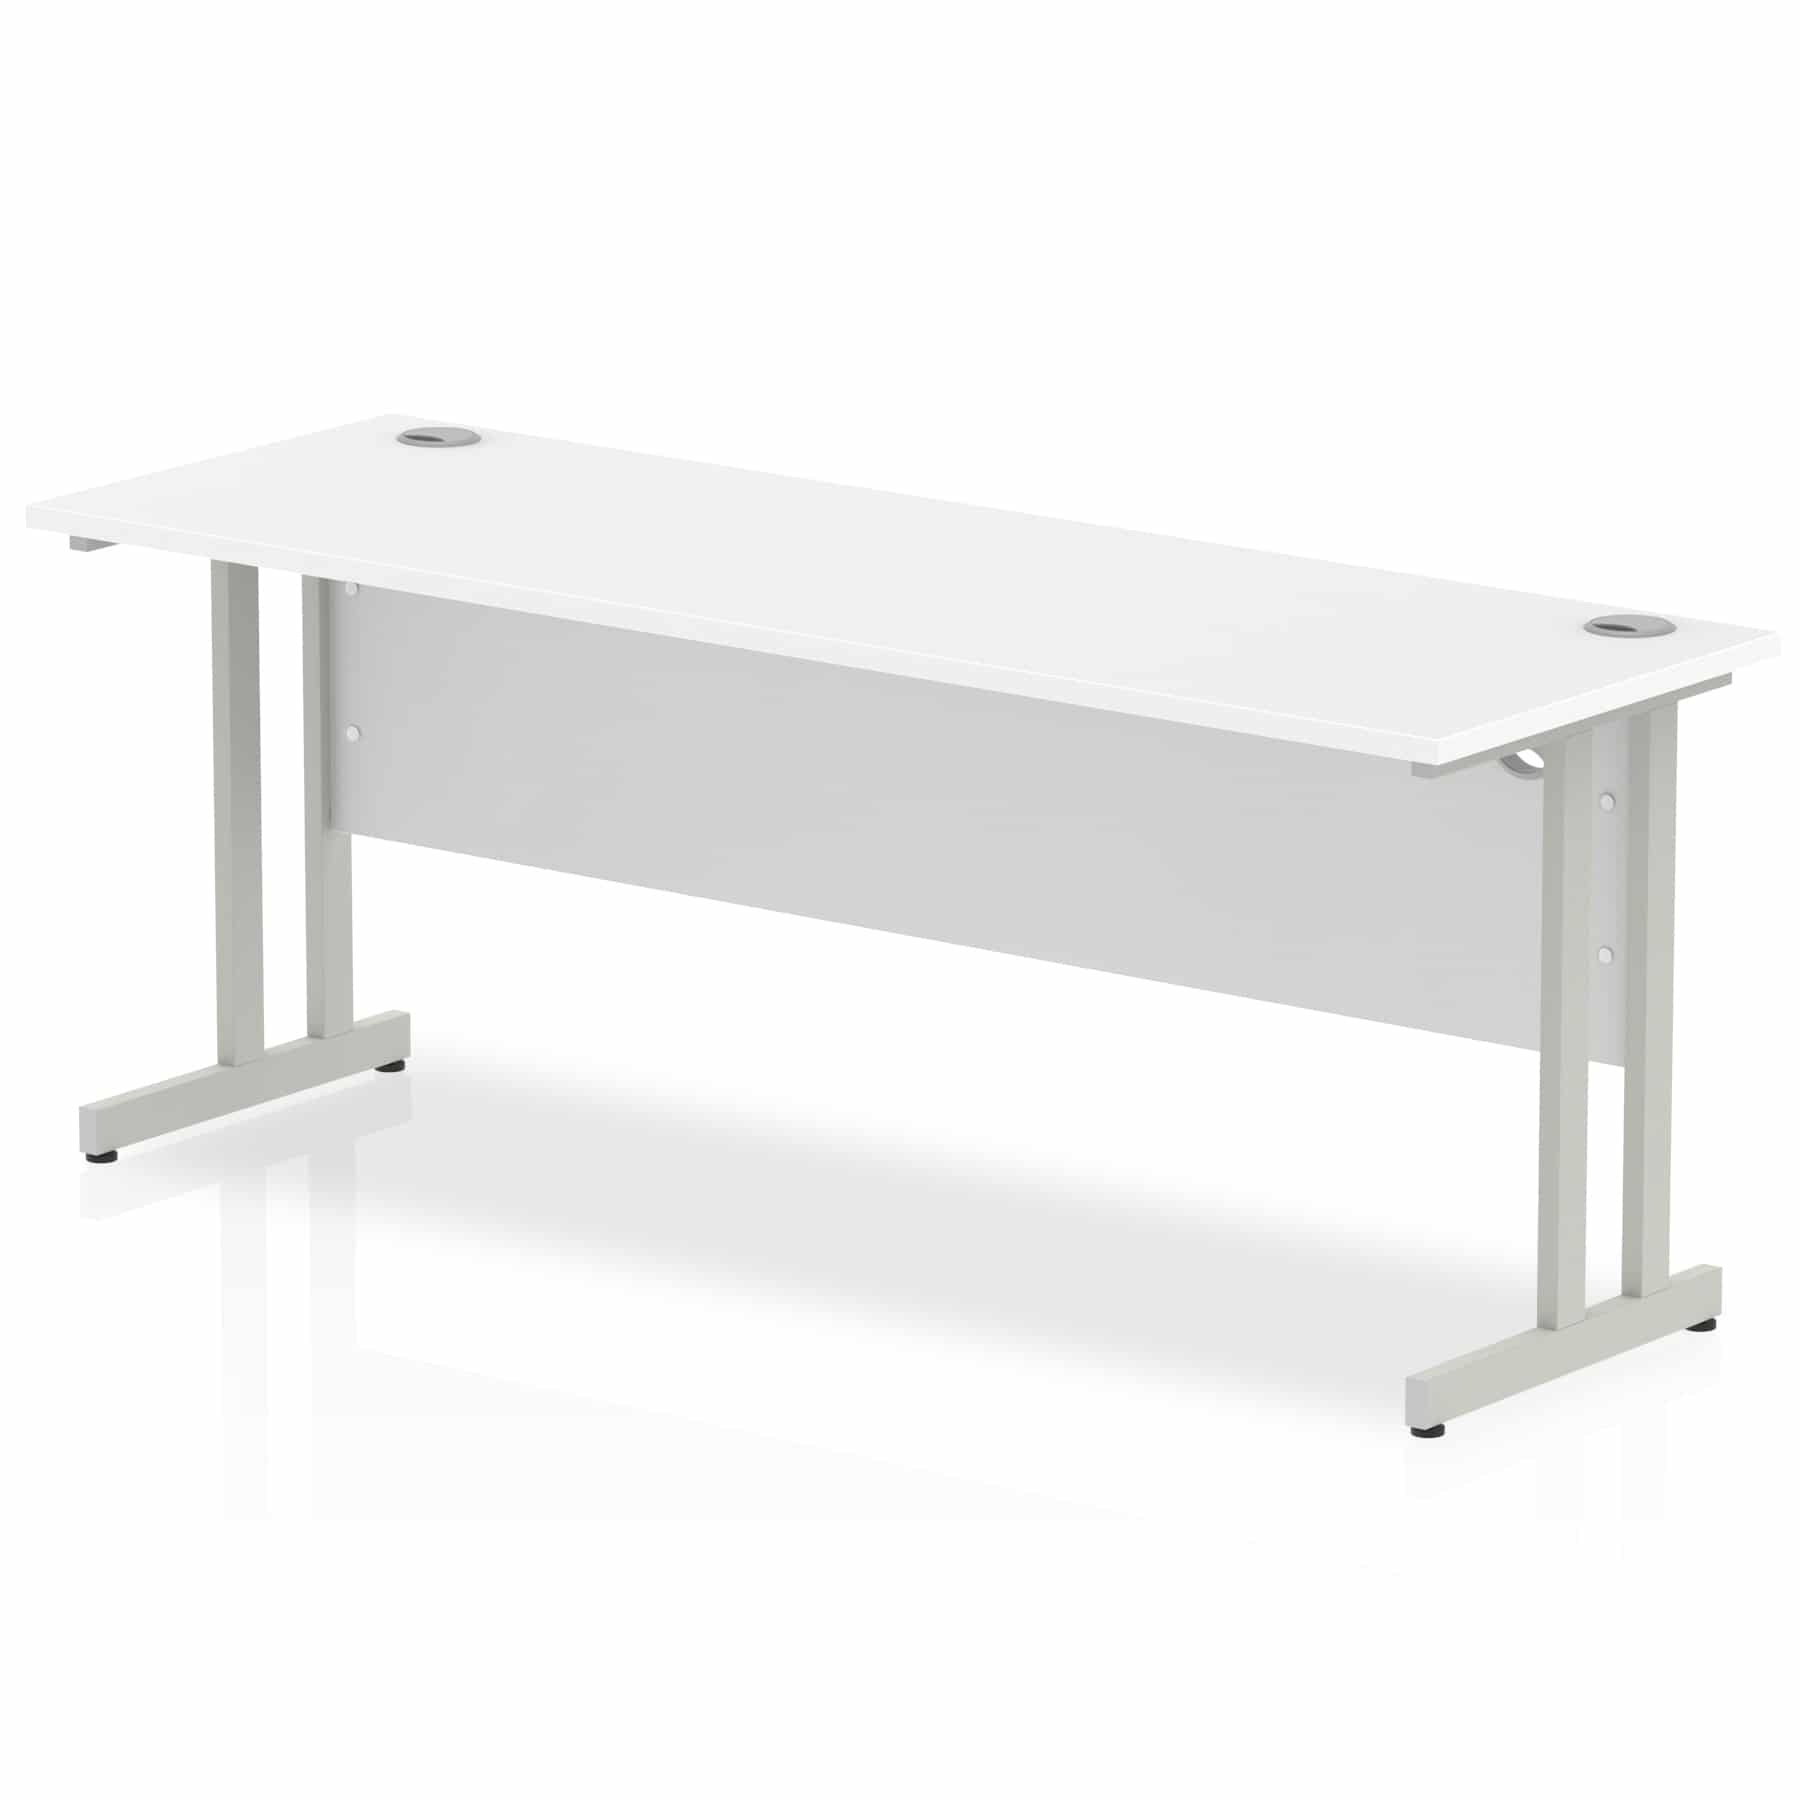 Slimline 1800mm x 600mm Rectangular Straight Desk in White